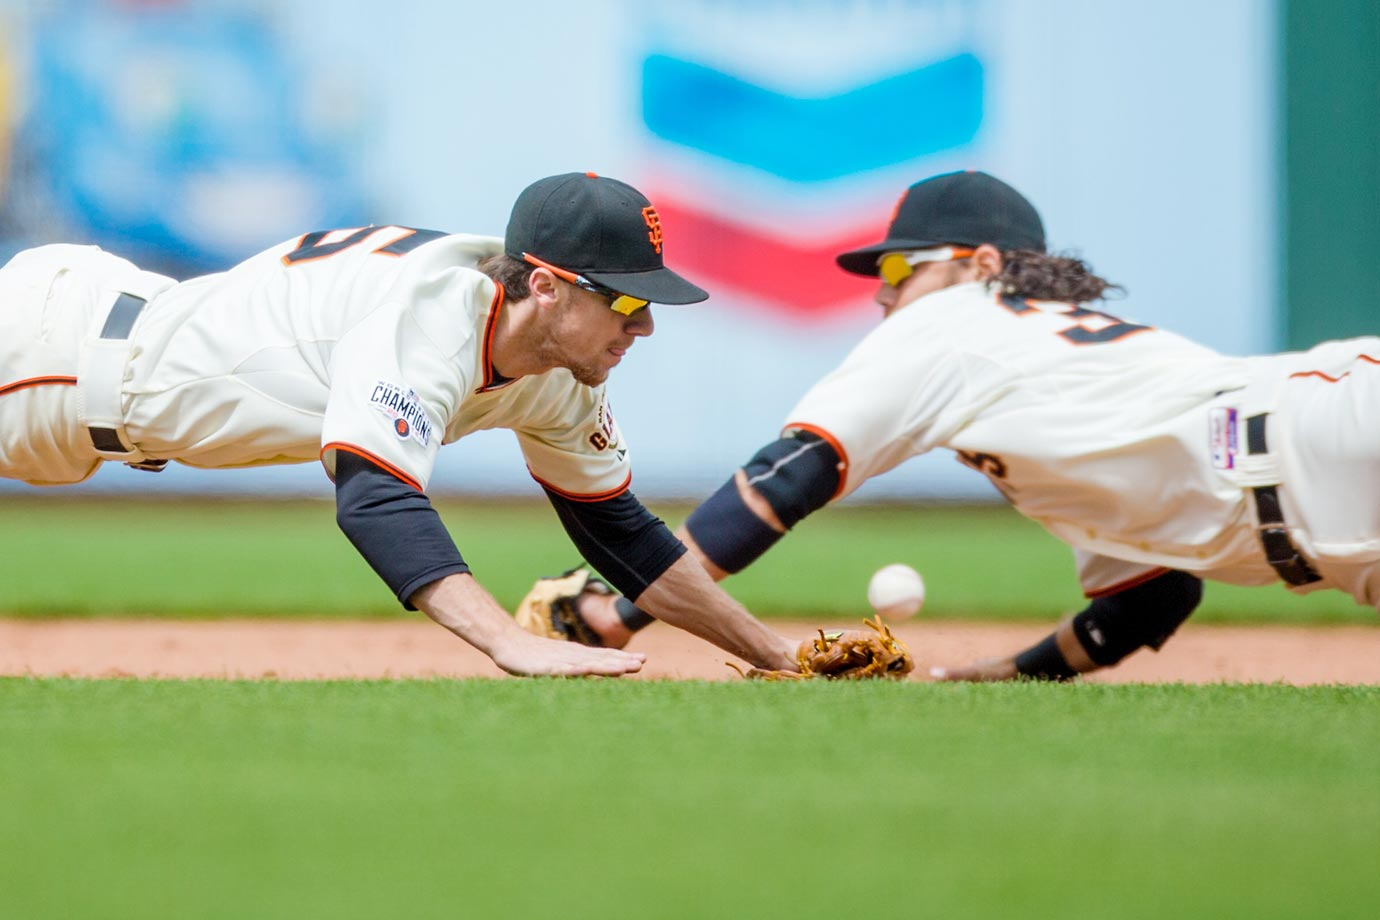 Matt Duffy and Brandon Crawford, June 3, 2015.